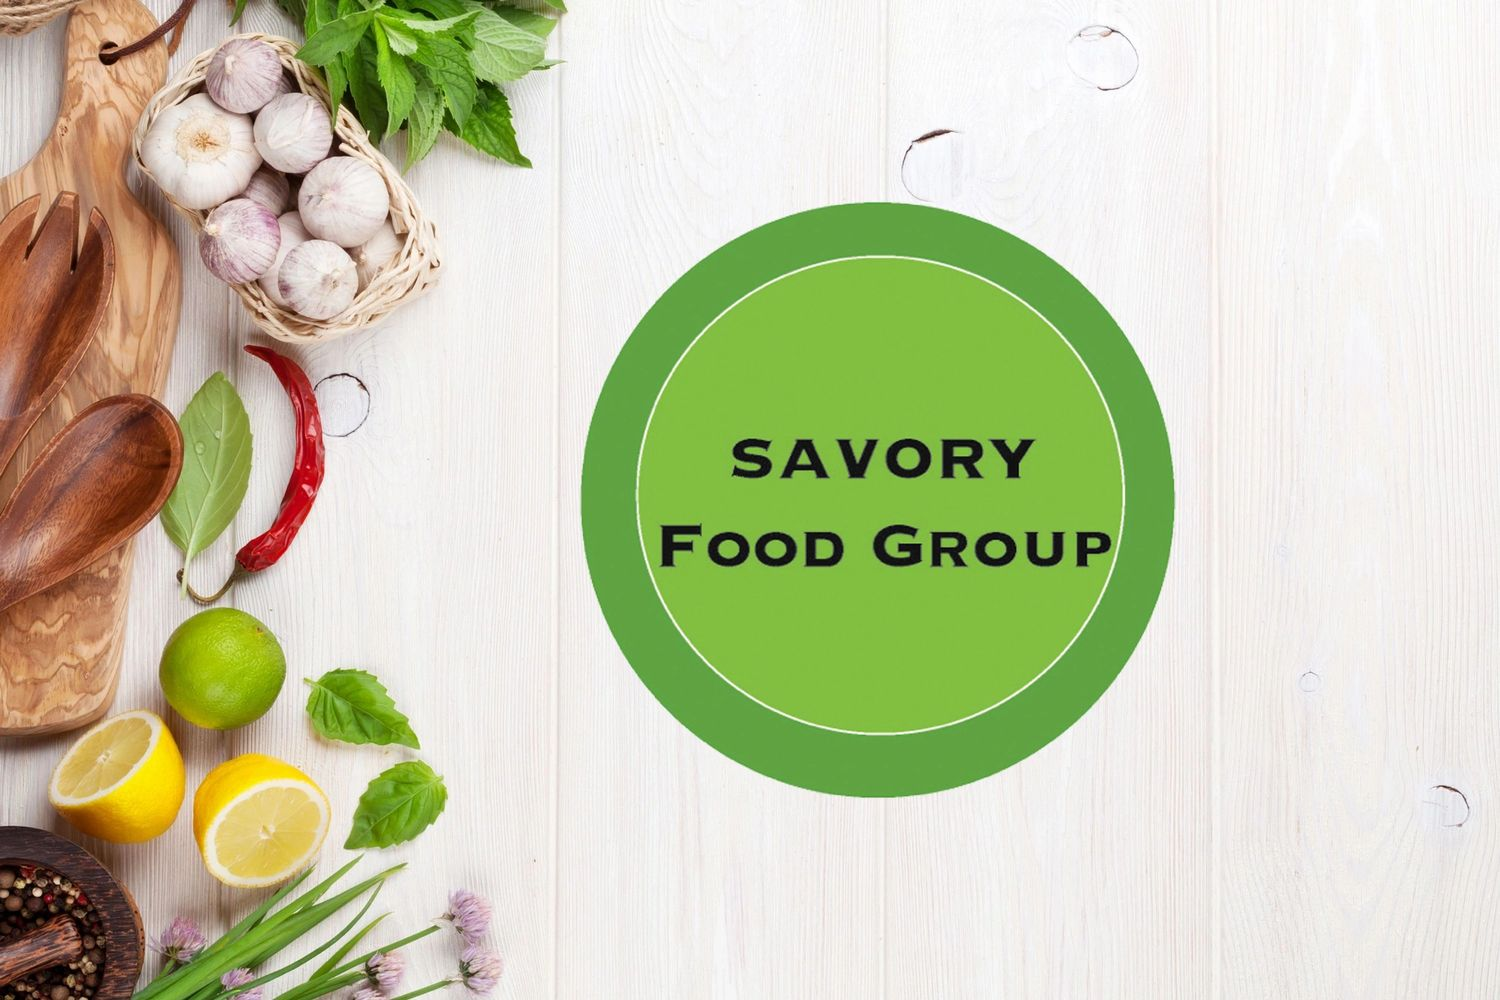 Southern California Food Broker, West Coast Food Broker, Foodservice Broker, Food Service Broker